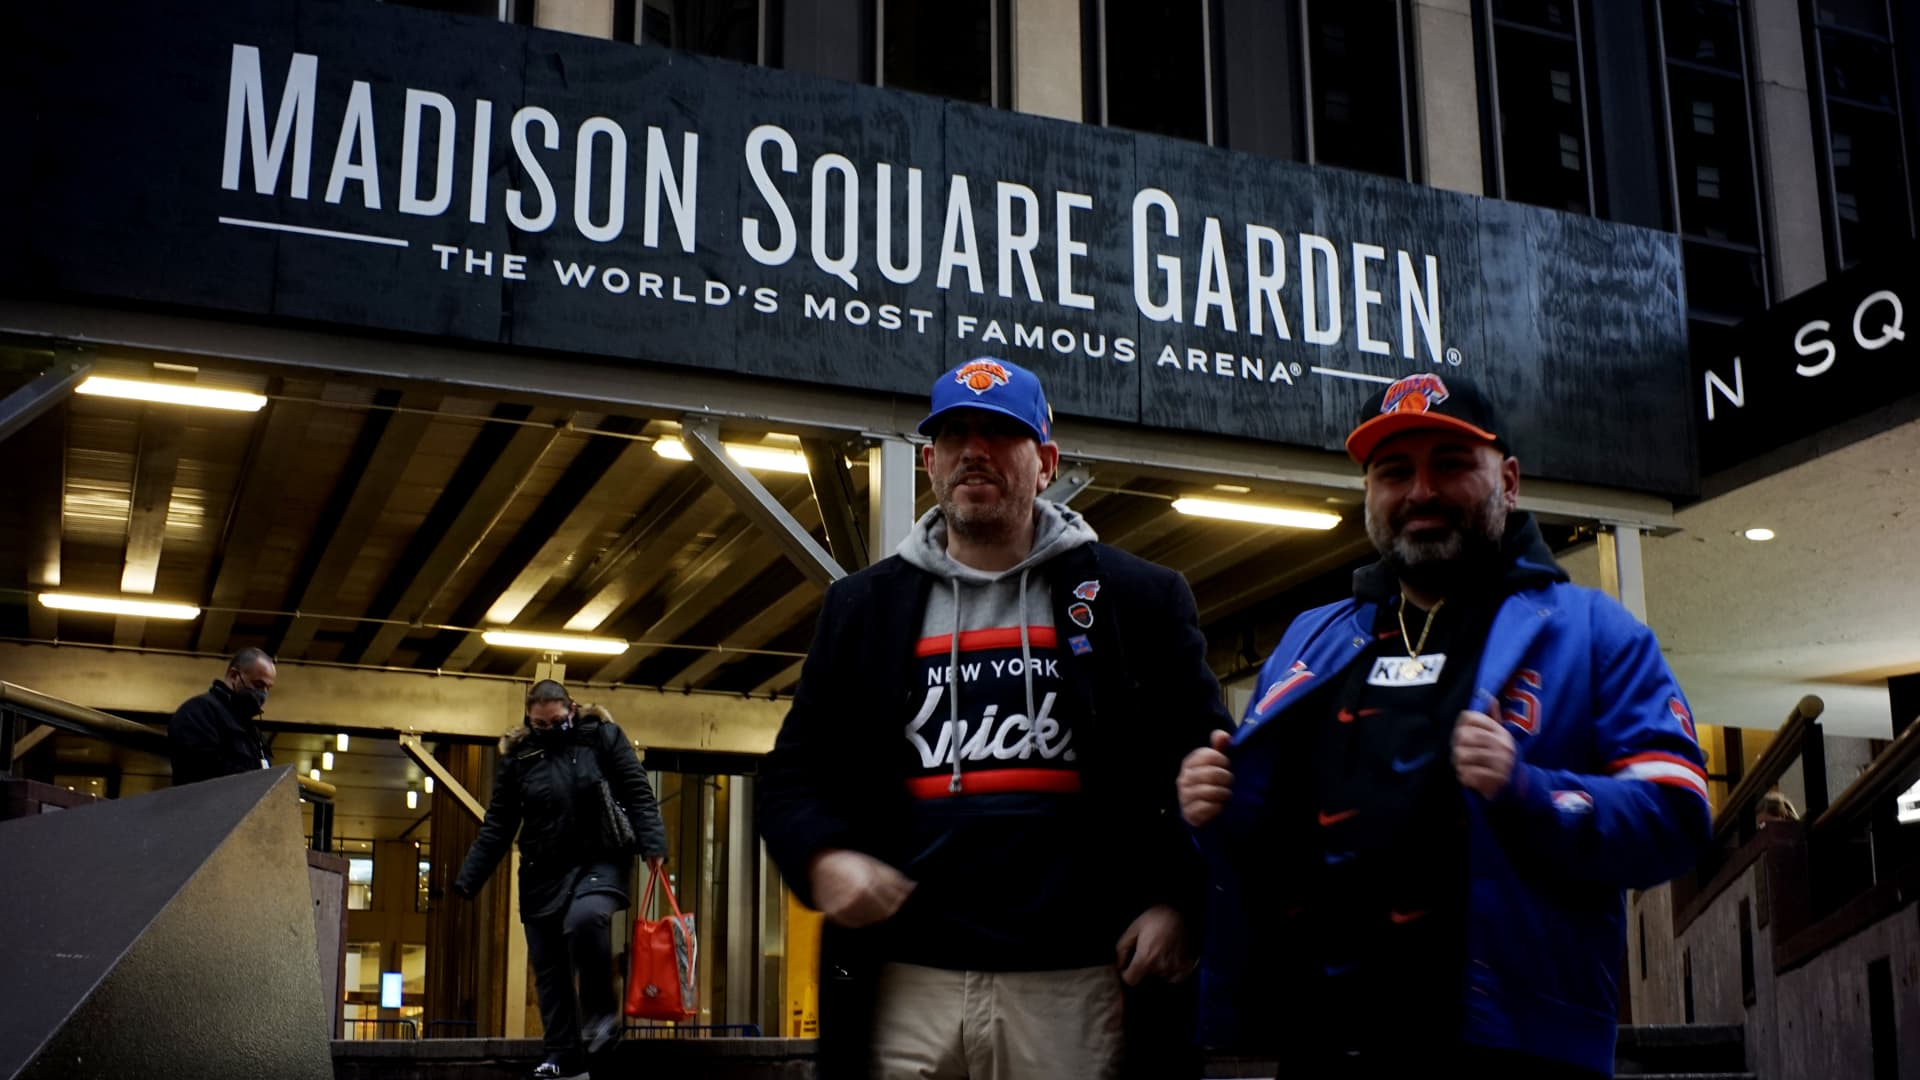 Fans arrive to Madison Square Garden before the game between the Golden State Warriors and New York Knicks on February 23, 2021 in New York City. For the first time since the onset of the COVID-19 pandemic, Madison Square Garden reopened its doors at limited capacity.